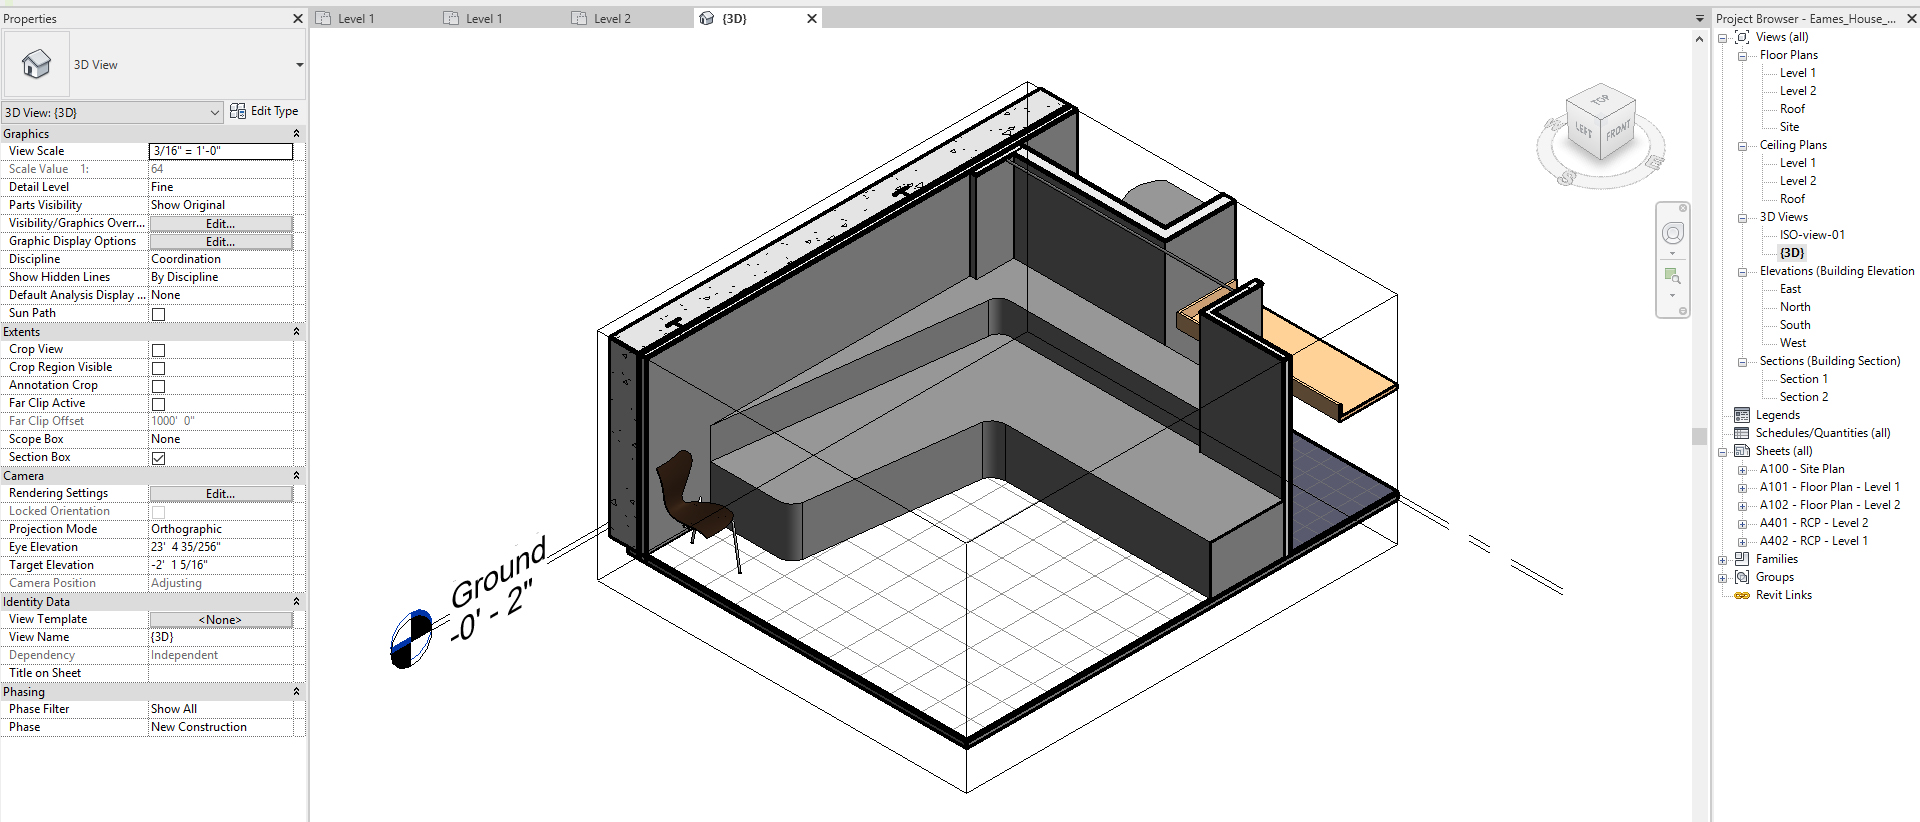 It shows the resulting image after creating the custom alcove seating.